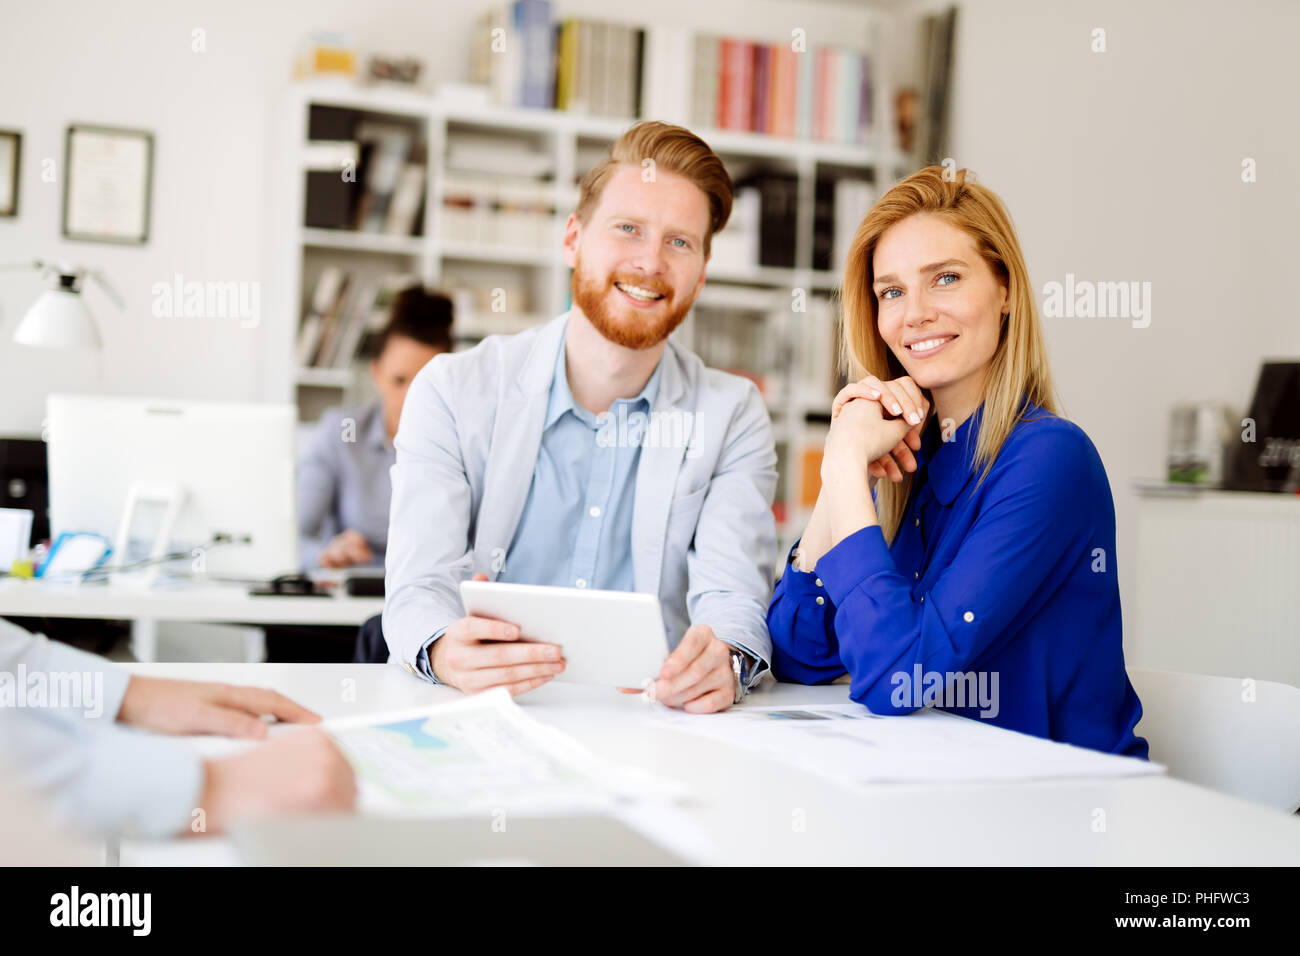 Business people office daily routine - Stock Image